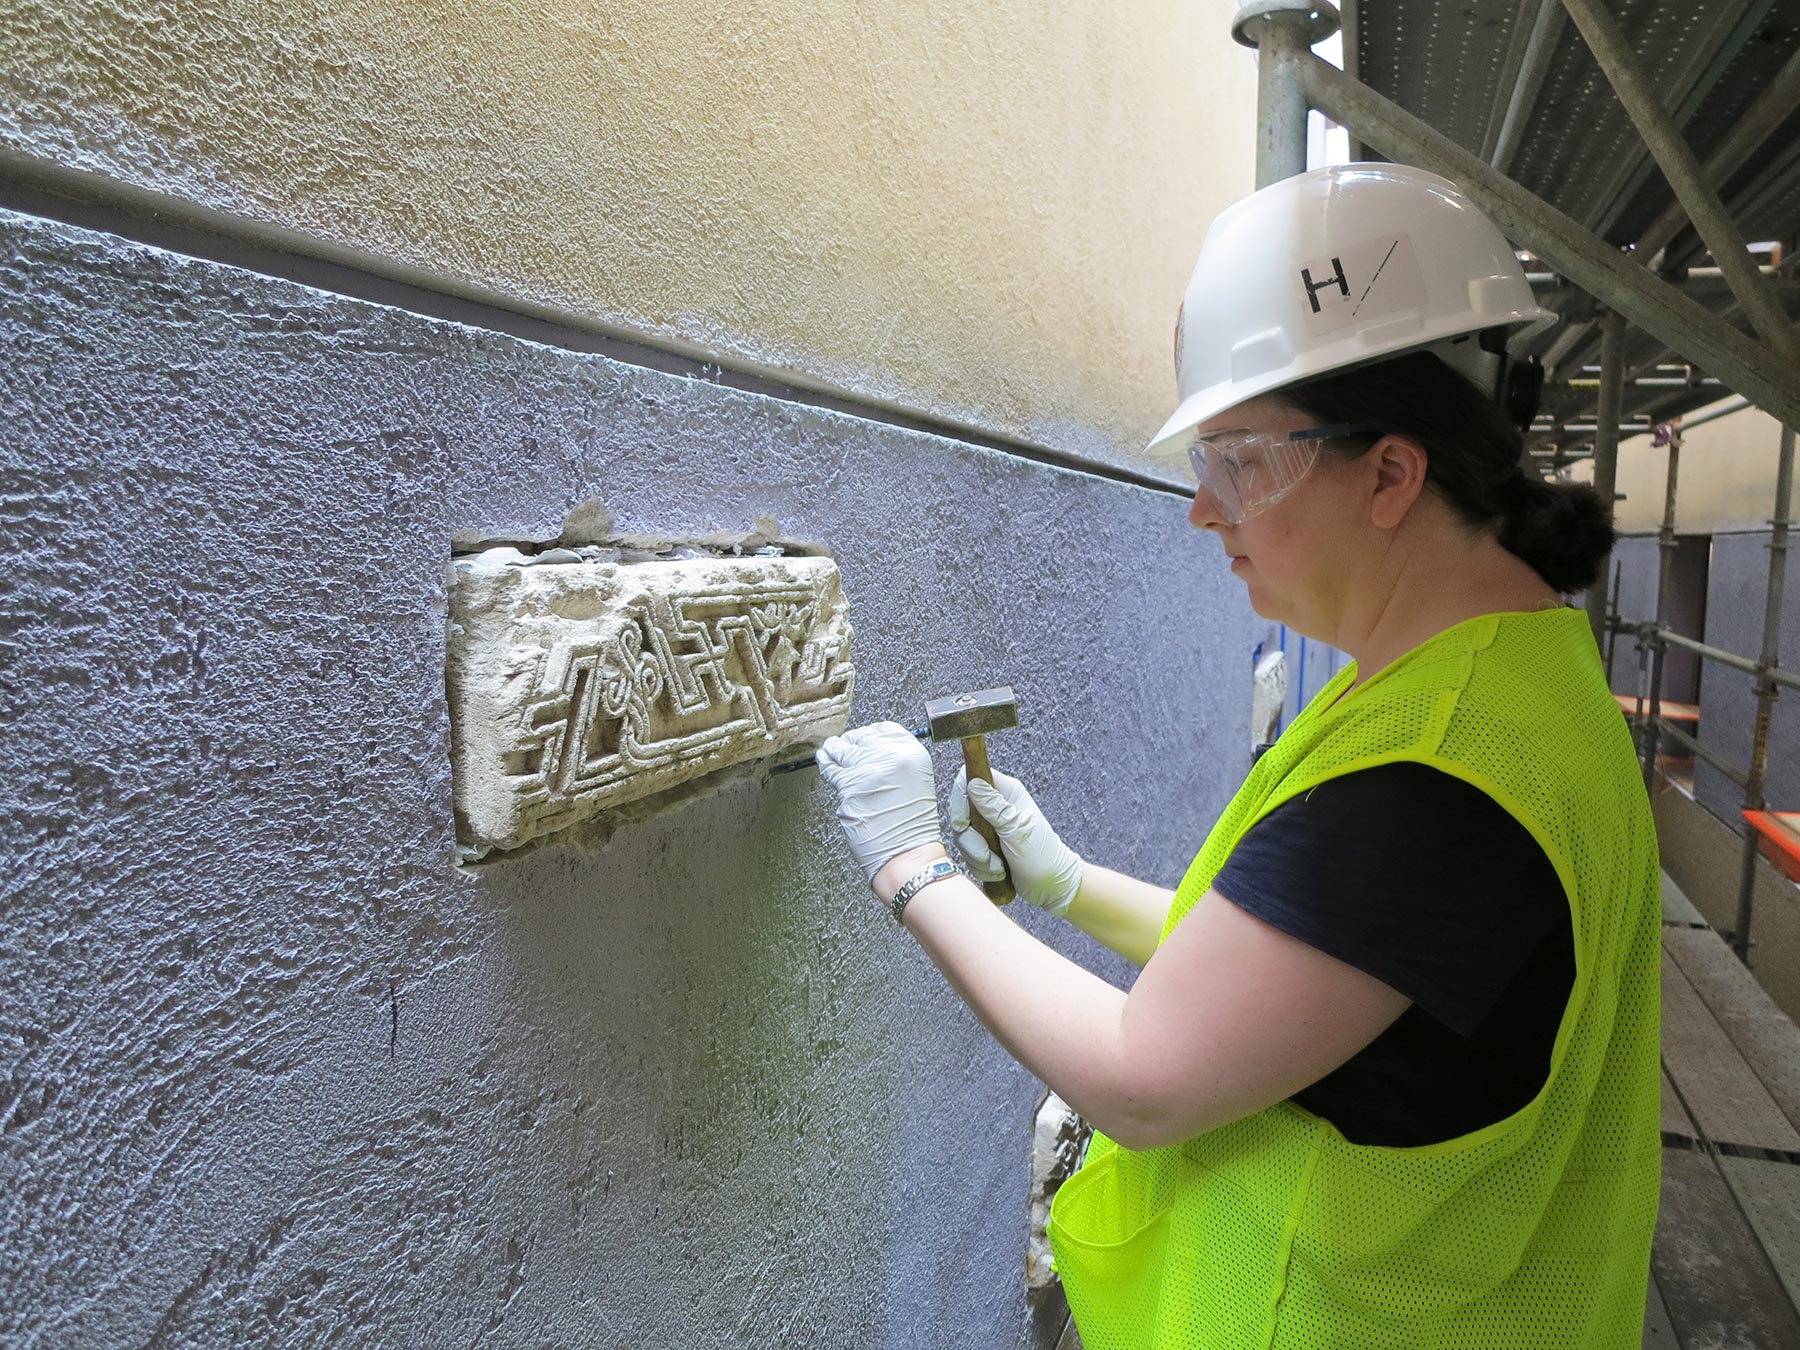 Susan Costello, associate conservator of objects and sculpture in the Straus Center for Conservation and Technical Studies, removes original sixth-century Coptic architectural fragments from the wall in Harvard's Arthur M. Sackler Building. As the building underwent renovations, a small team of conservators, curators, and tradespeople devised a plan to remove the fragile, very heavy original objects from the walls and replace them with 3D-printed reproductions.